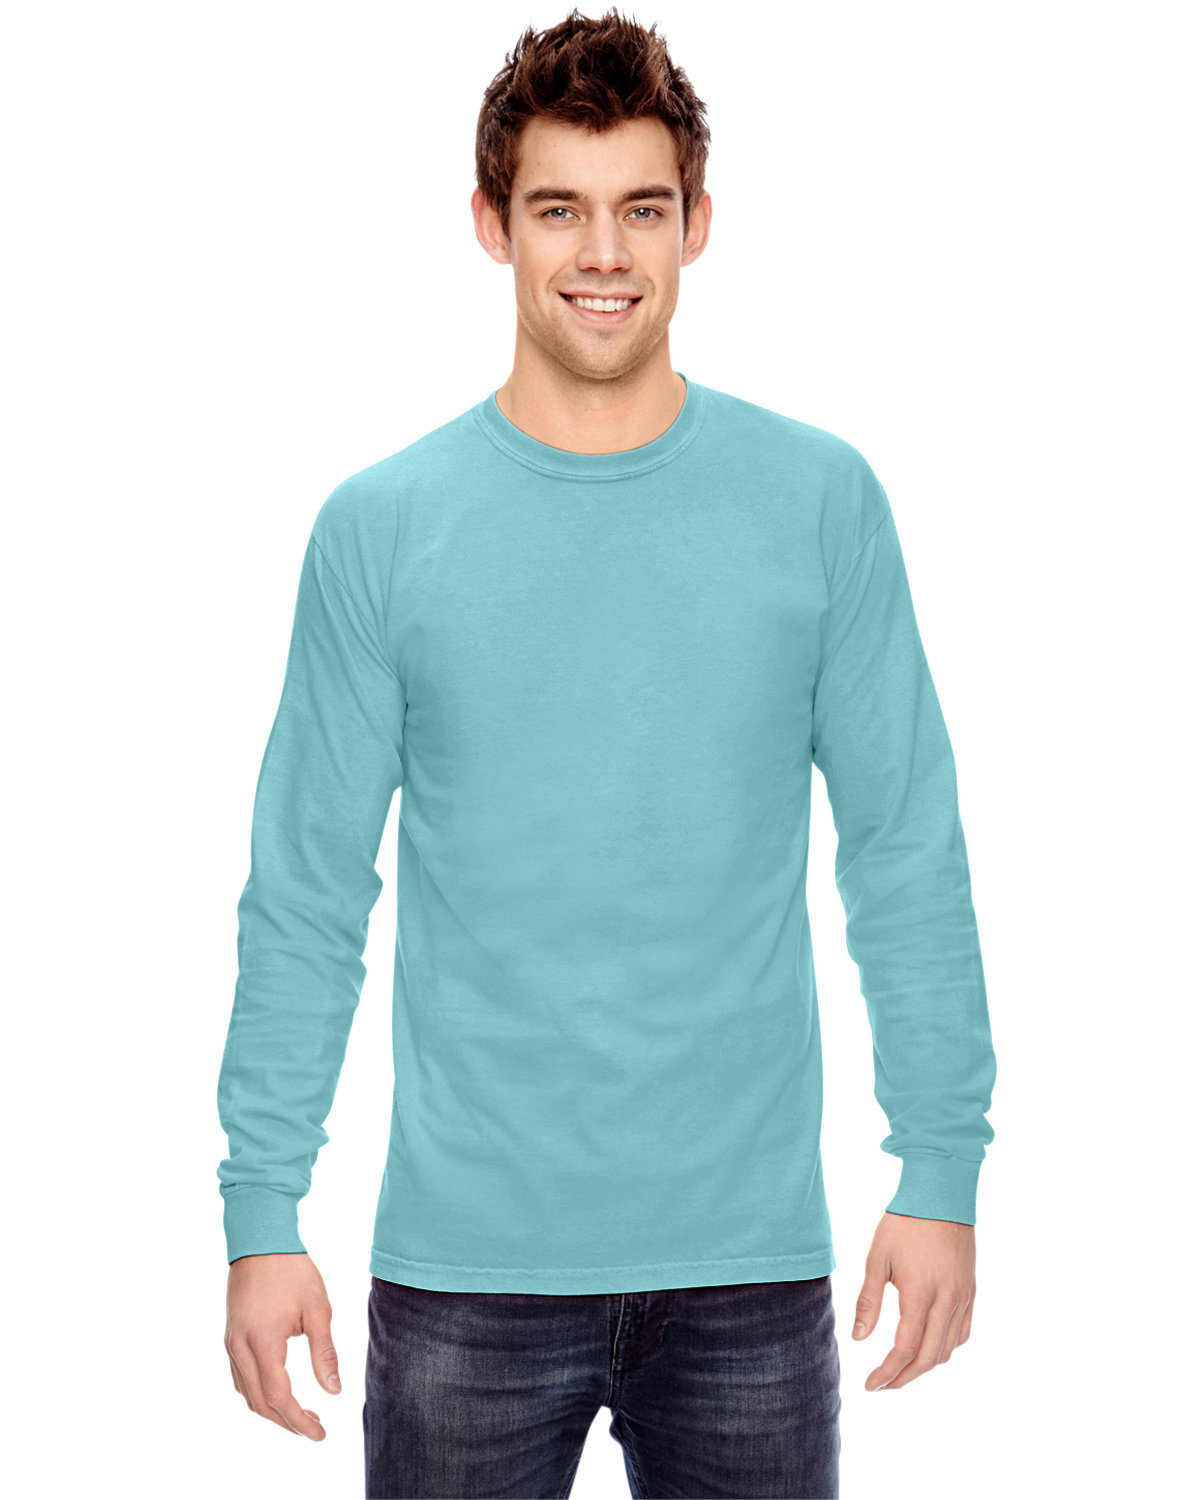 Comfort Colors Adult Heavyweight Long-Sleeve T-Shirt CHALKY MINT